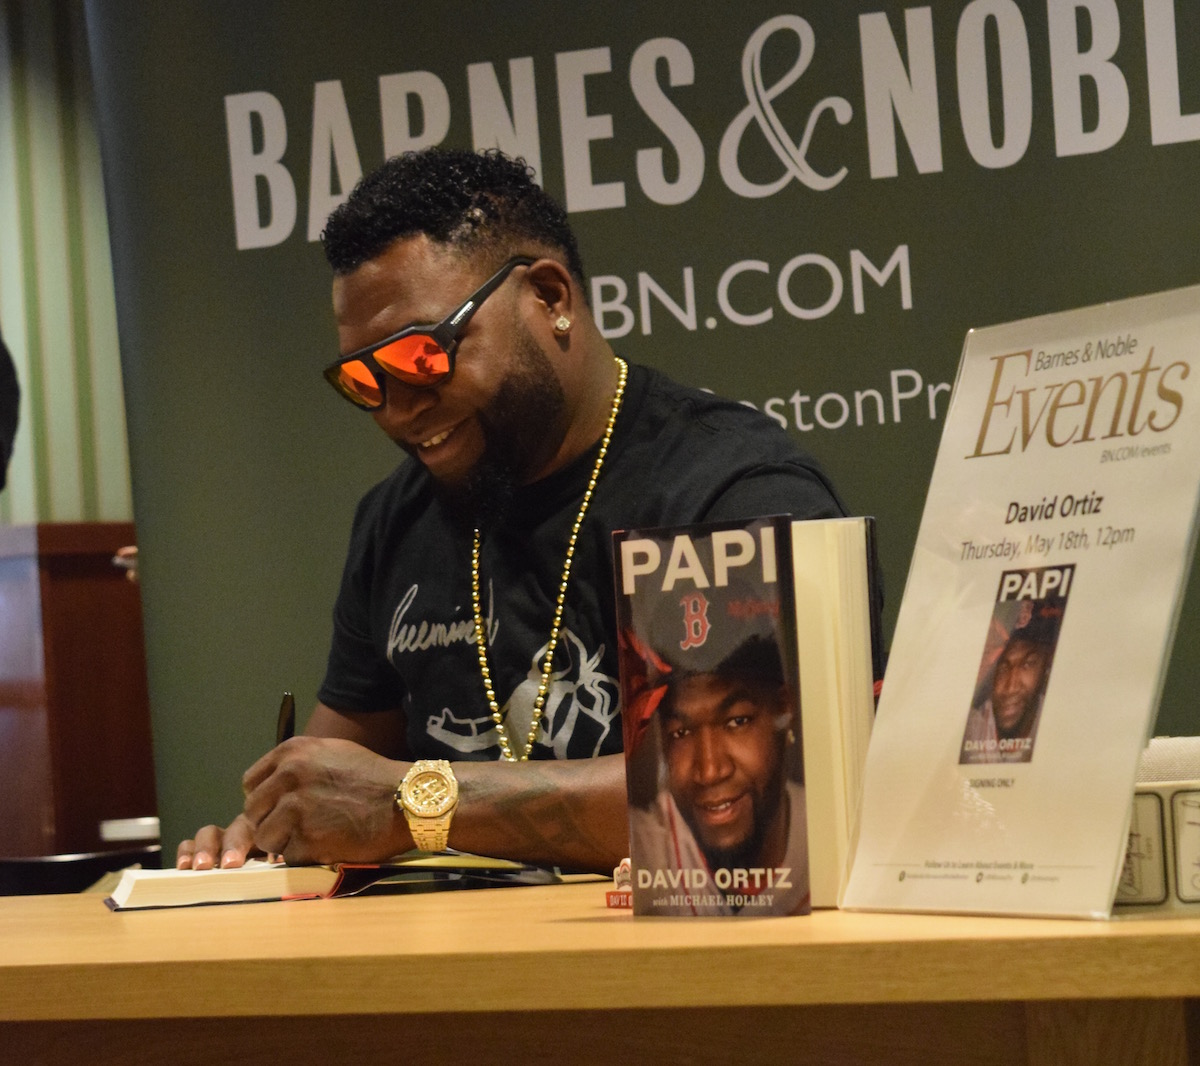 David Ortiz at book signing